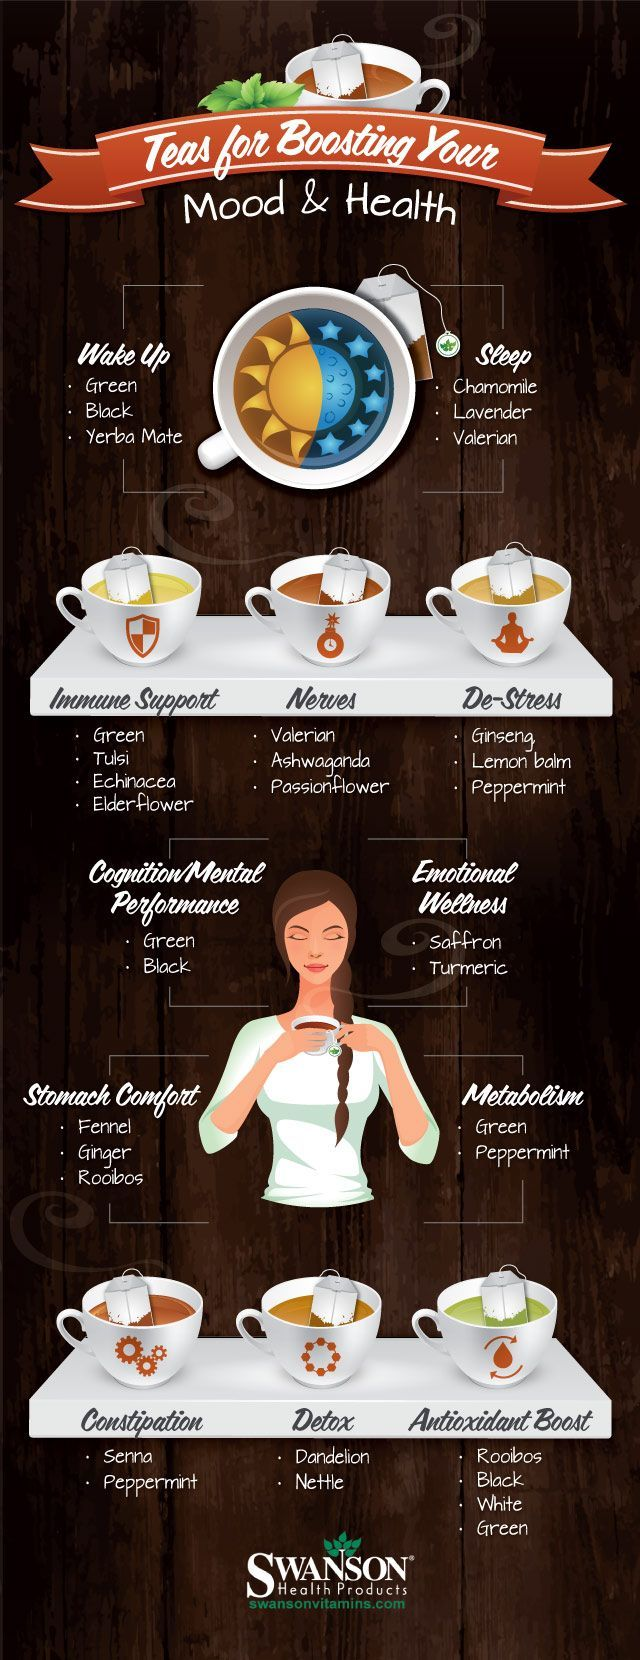 [NEED A HEALTHY BODY SLIMMING CLEANSE? - Get 28 day Full body slimming Detox Tea Program - http://WWW.DETOXMETEA.COM ]  Tips to Enhance Your Mood